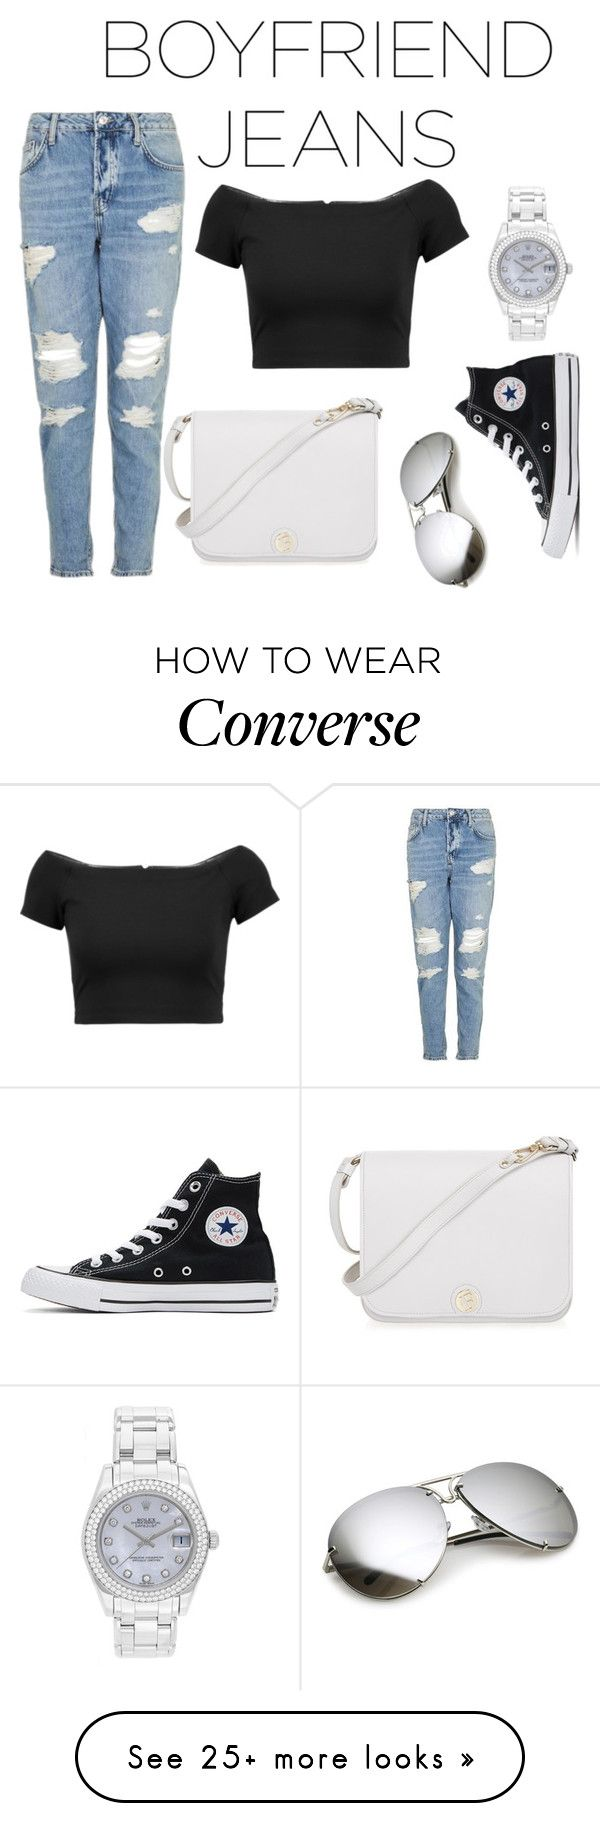 """""""Boyfriend Jeans - Style"""" by ellvediina on Polyvore featuring Topshop, Alice + Olivia, Converse, Furla and Rolex"""